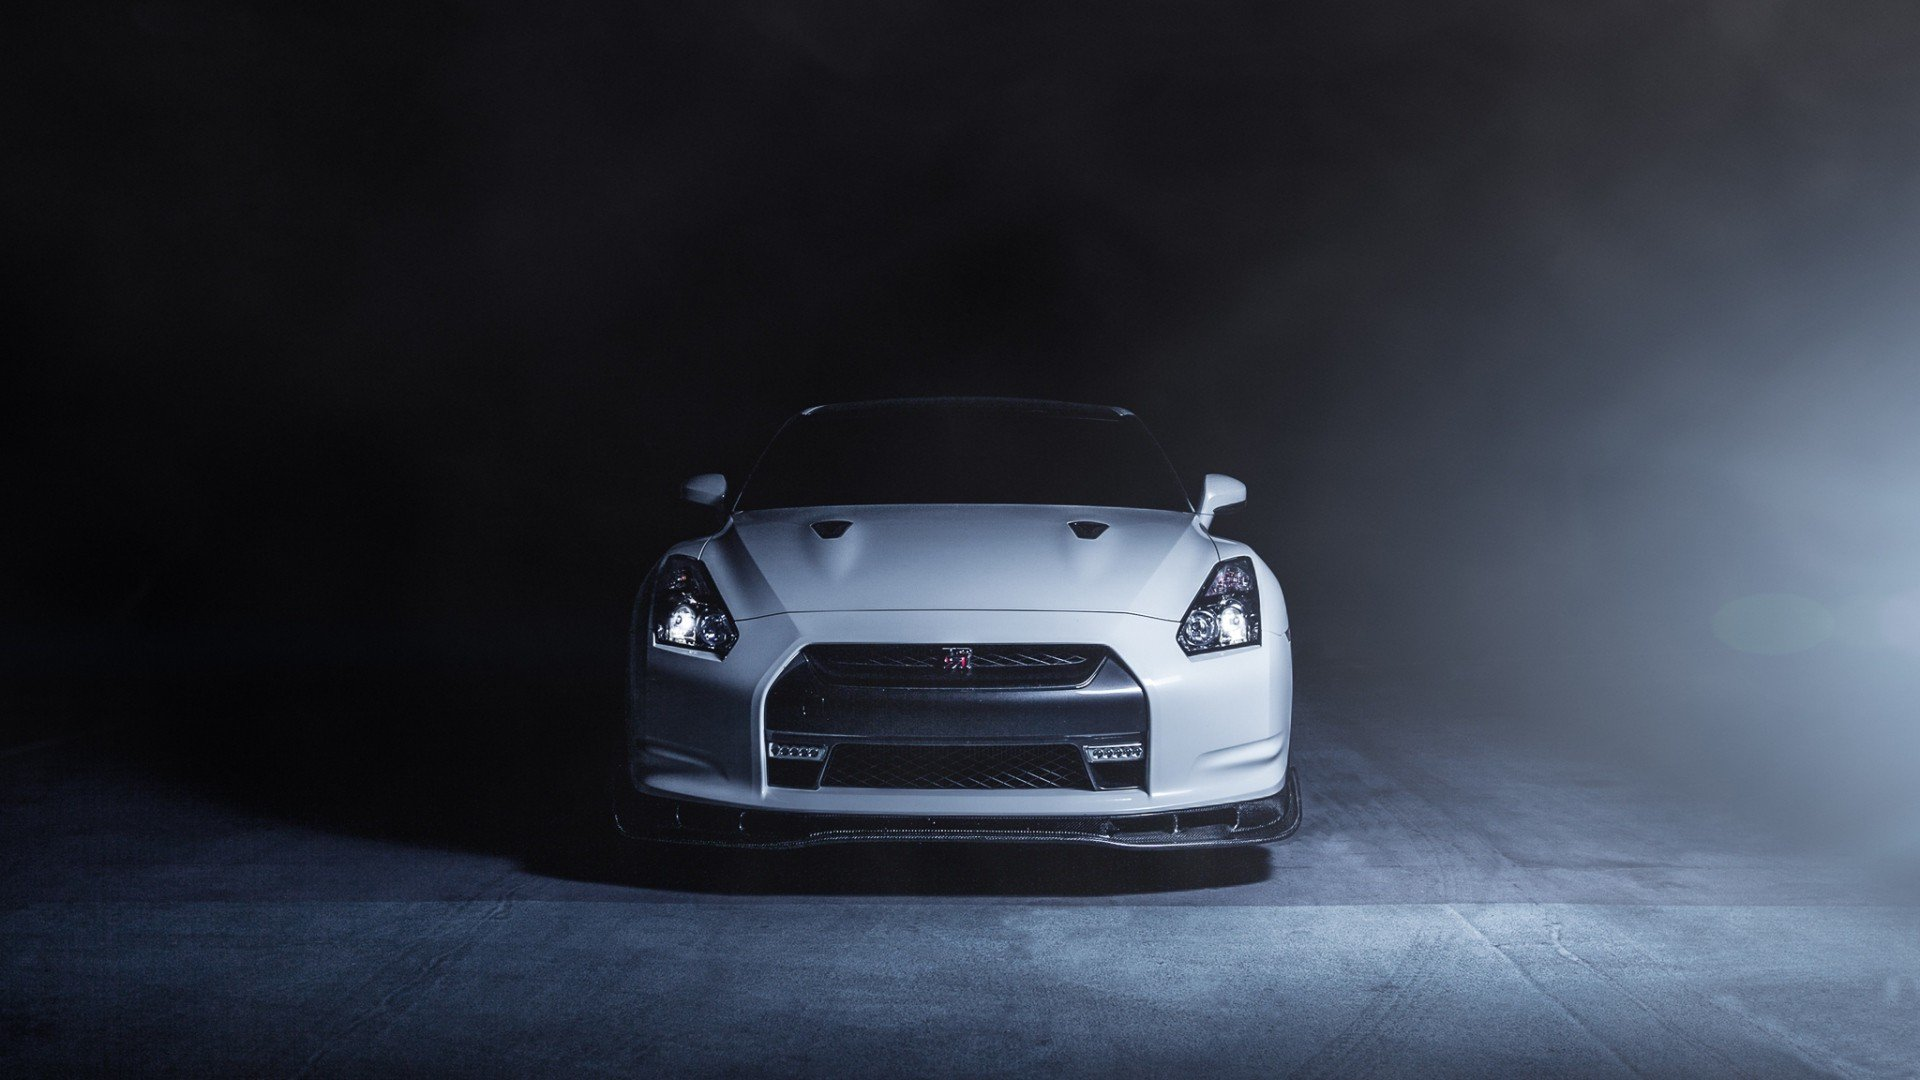 Nissan gtr r35 hd cars 4k wallpapers images backgrounds photos nissan gtr r35 voltagebd Choice Image